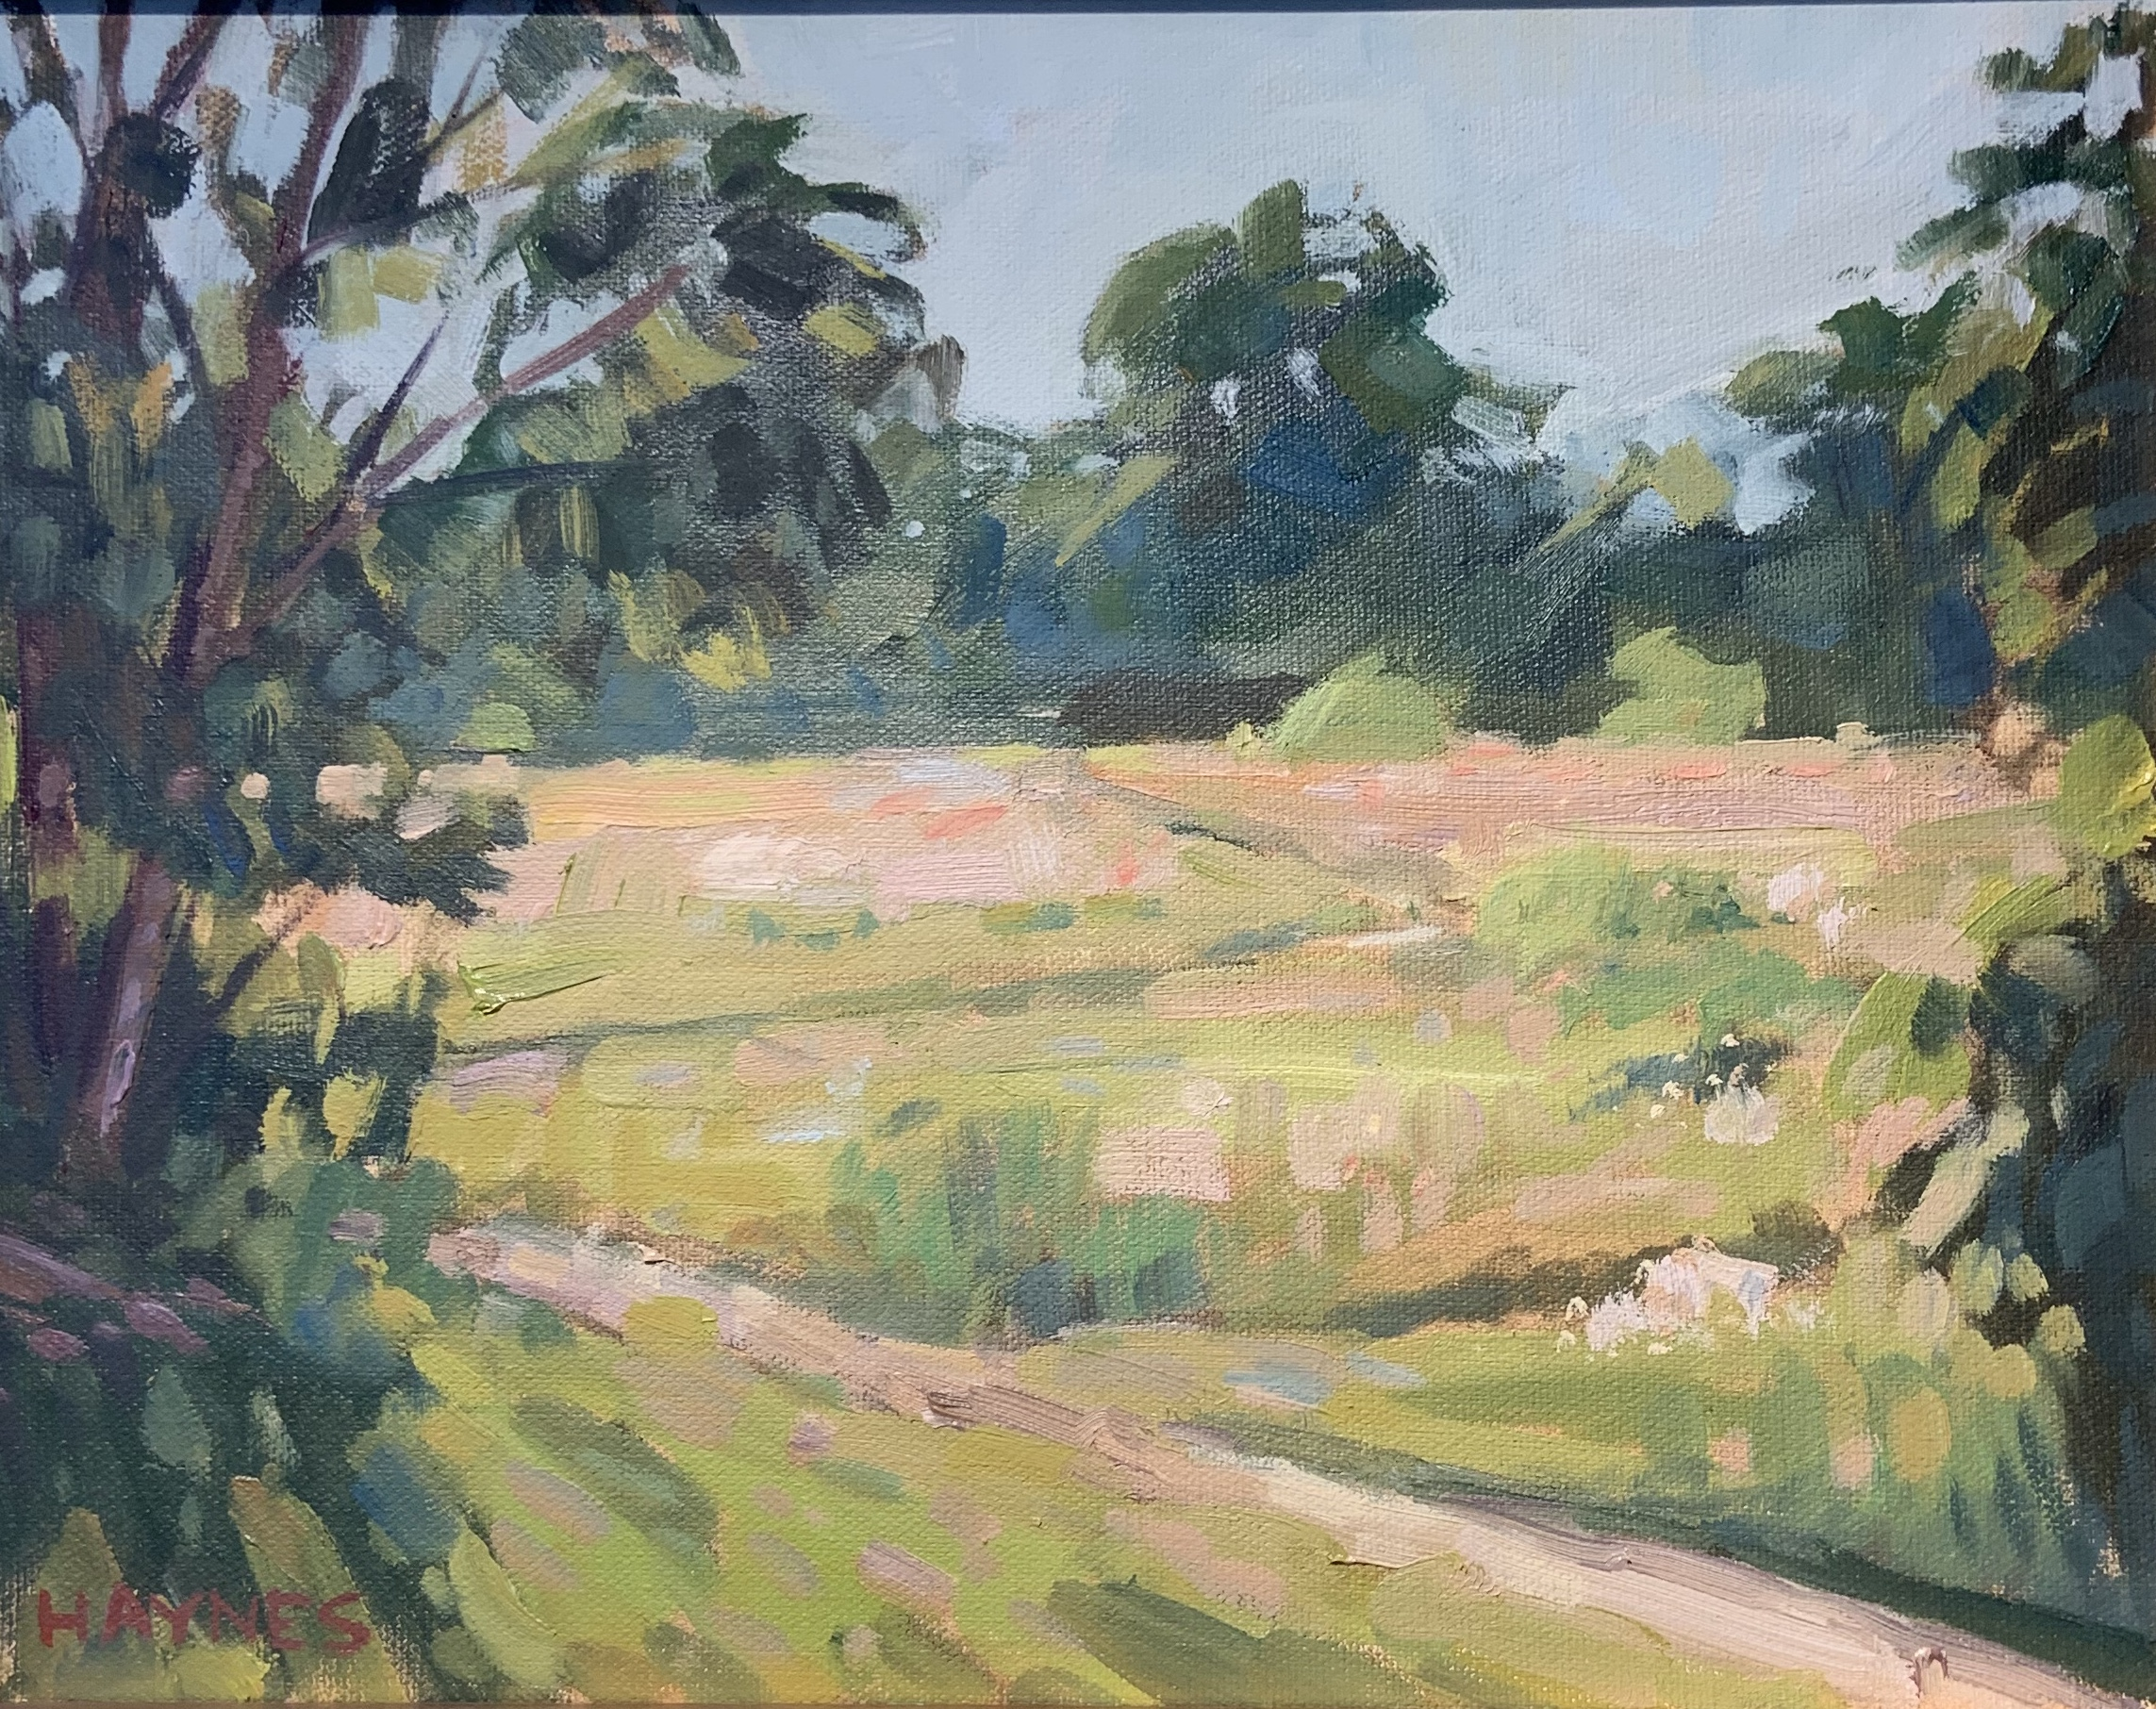 Moring Meander-Haynes, oil 11x14 $600